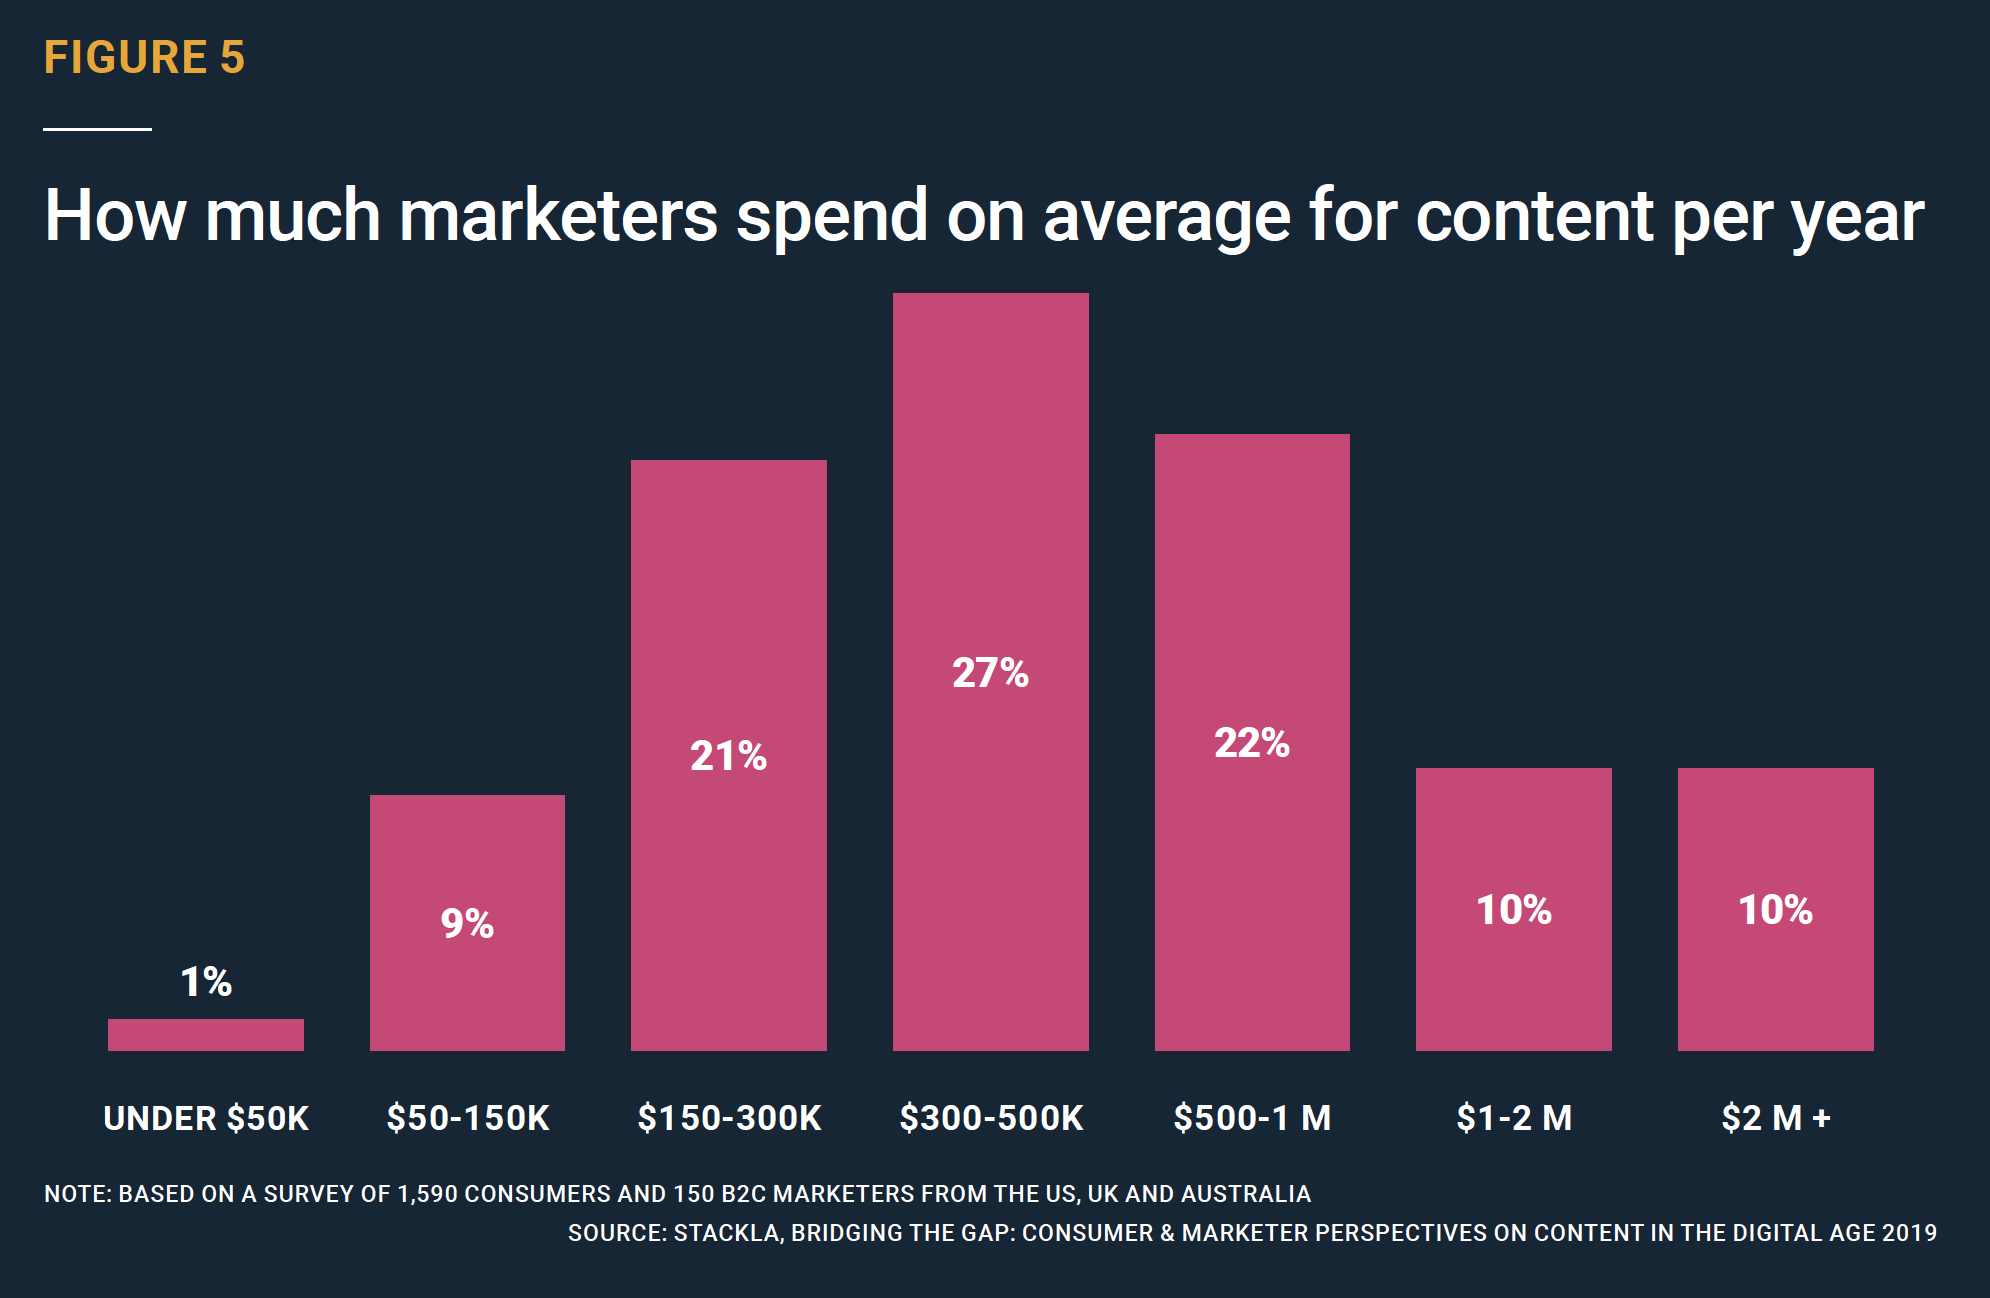 How much marketers spend on average for content per year